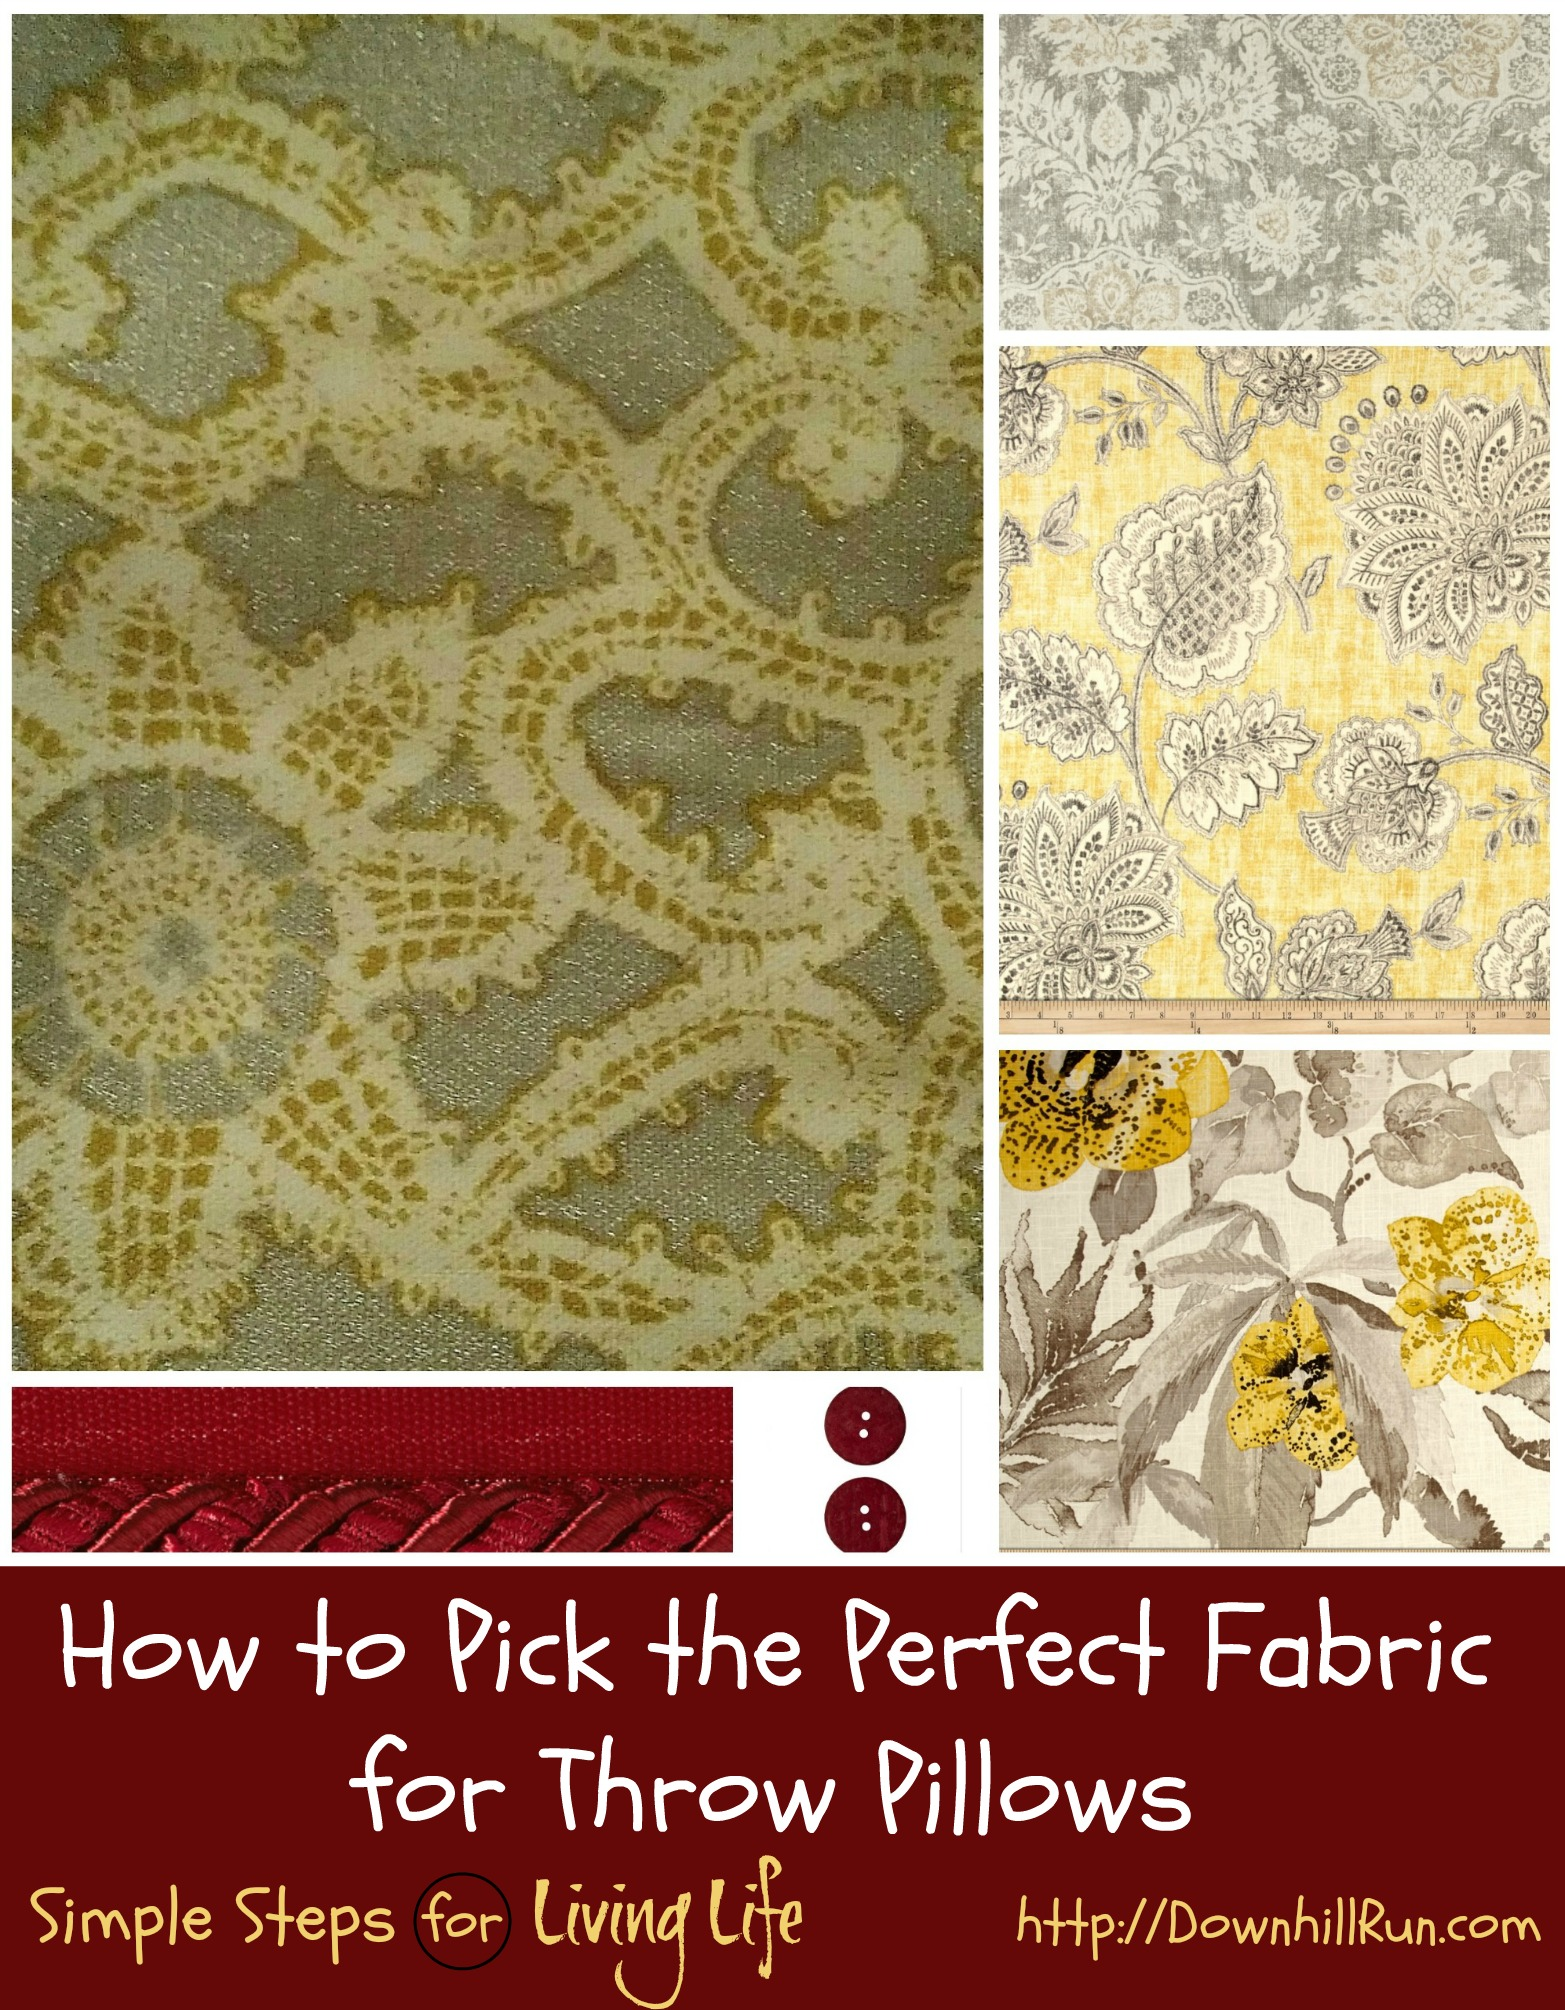 How to Pick the Perfect Fabric for Throw Pillows ...